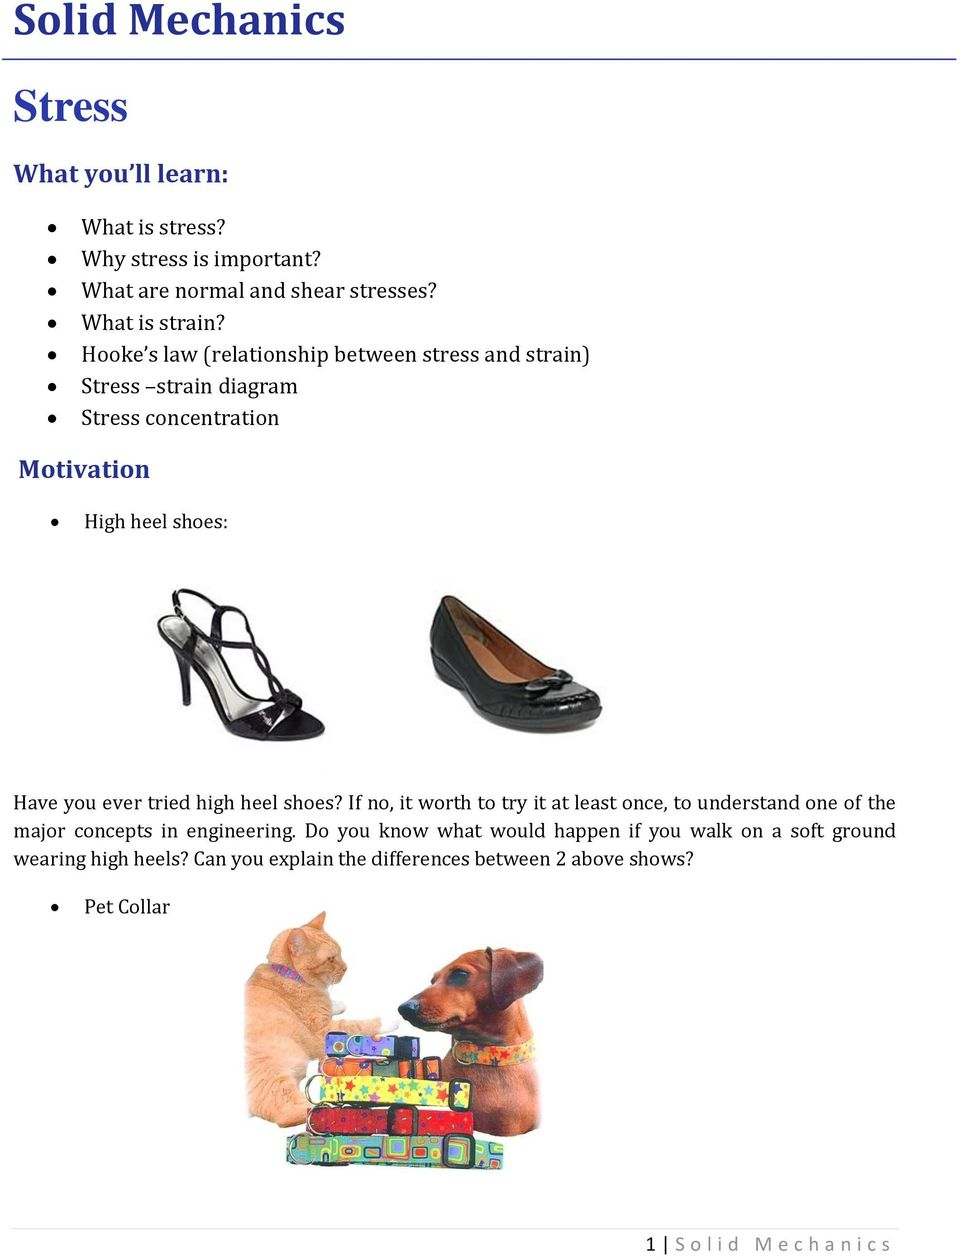 tried high heel shoes? If no, it worth to try it at least once, to understand one of the major concepts in engineering.